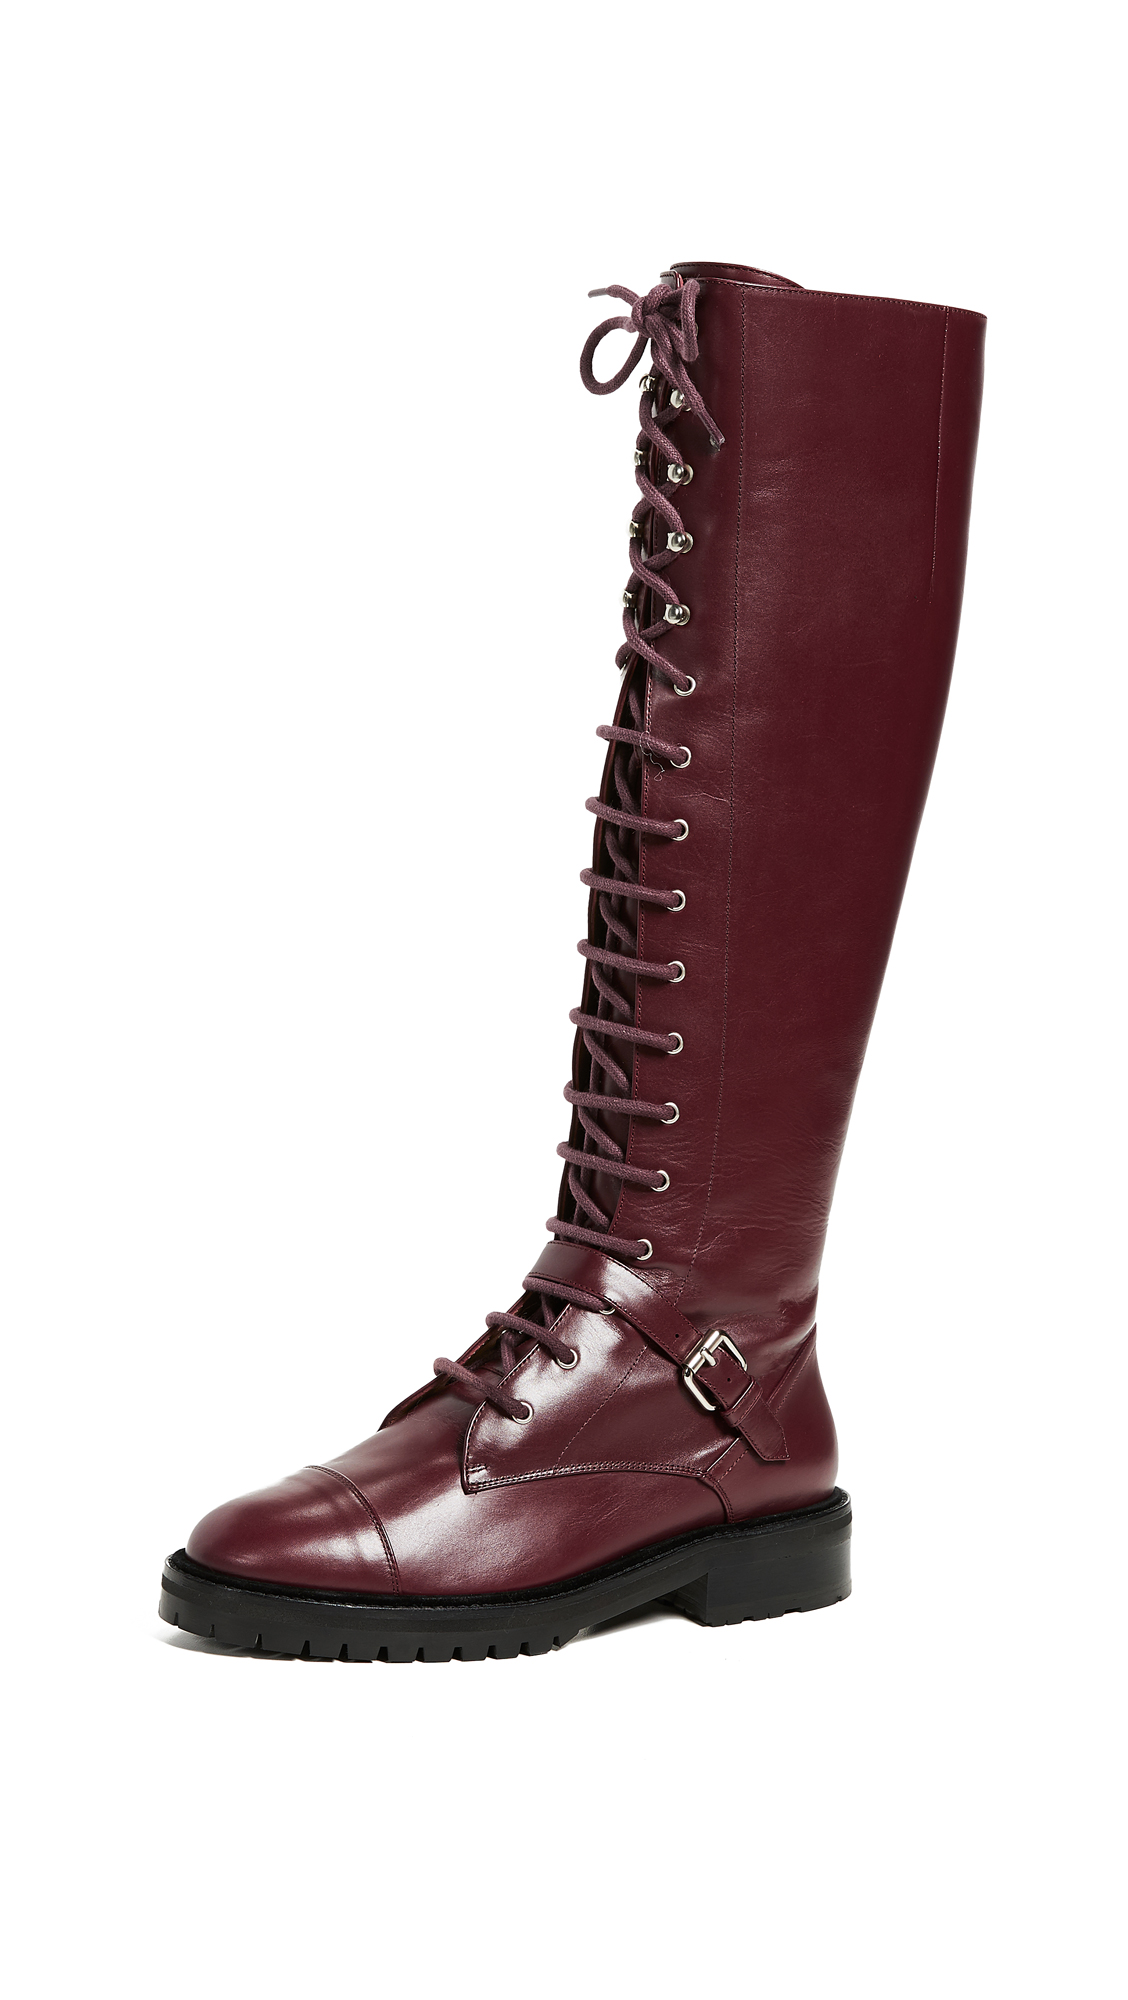 Tabitha Simmons Alfri Knee High Lace Up Boots